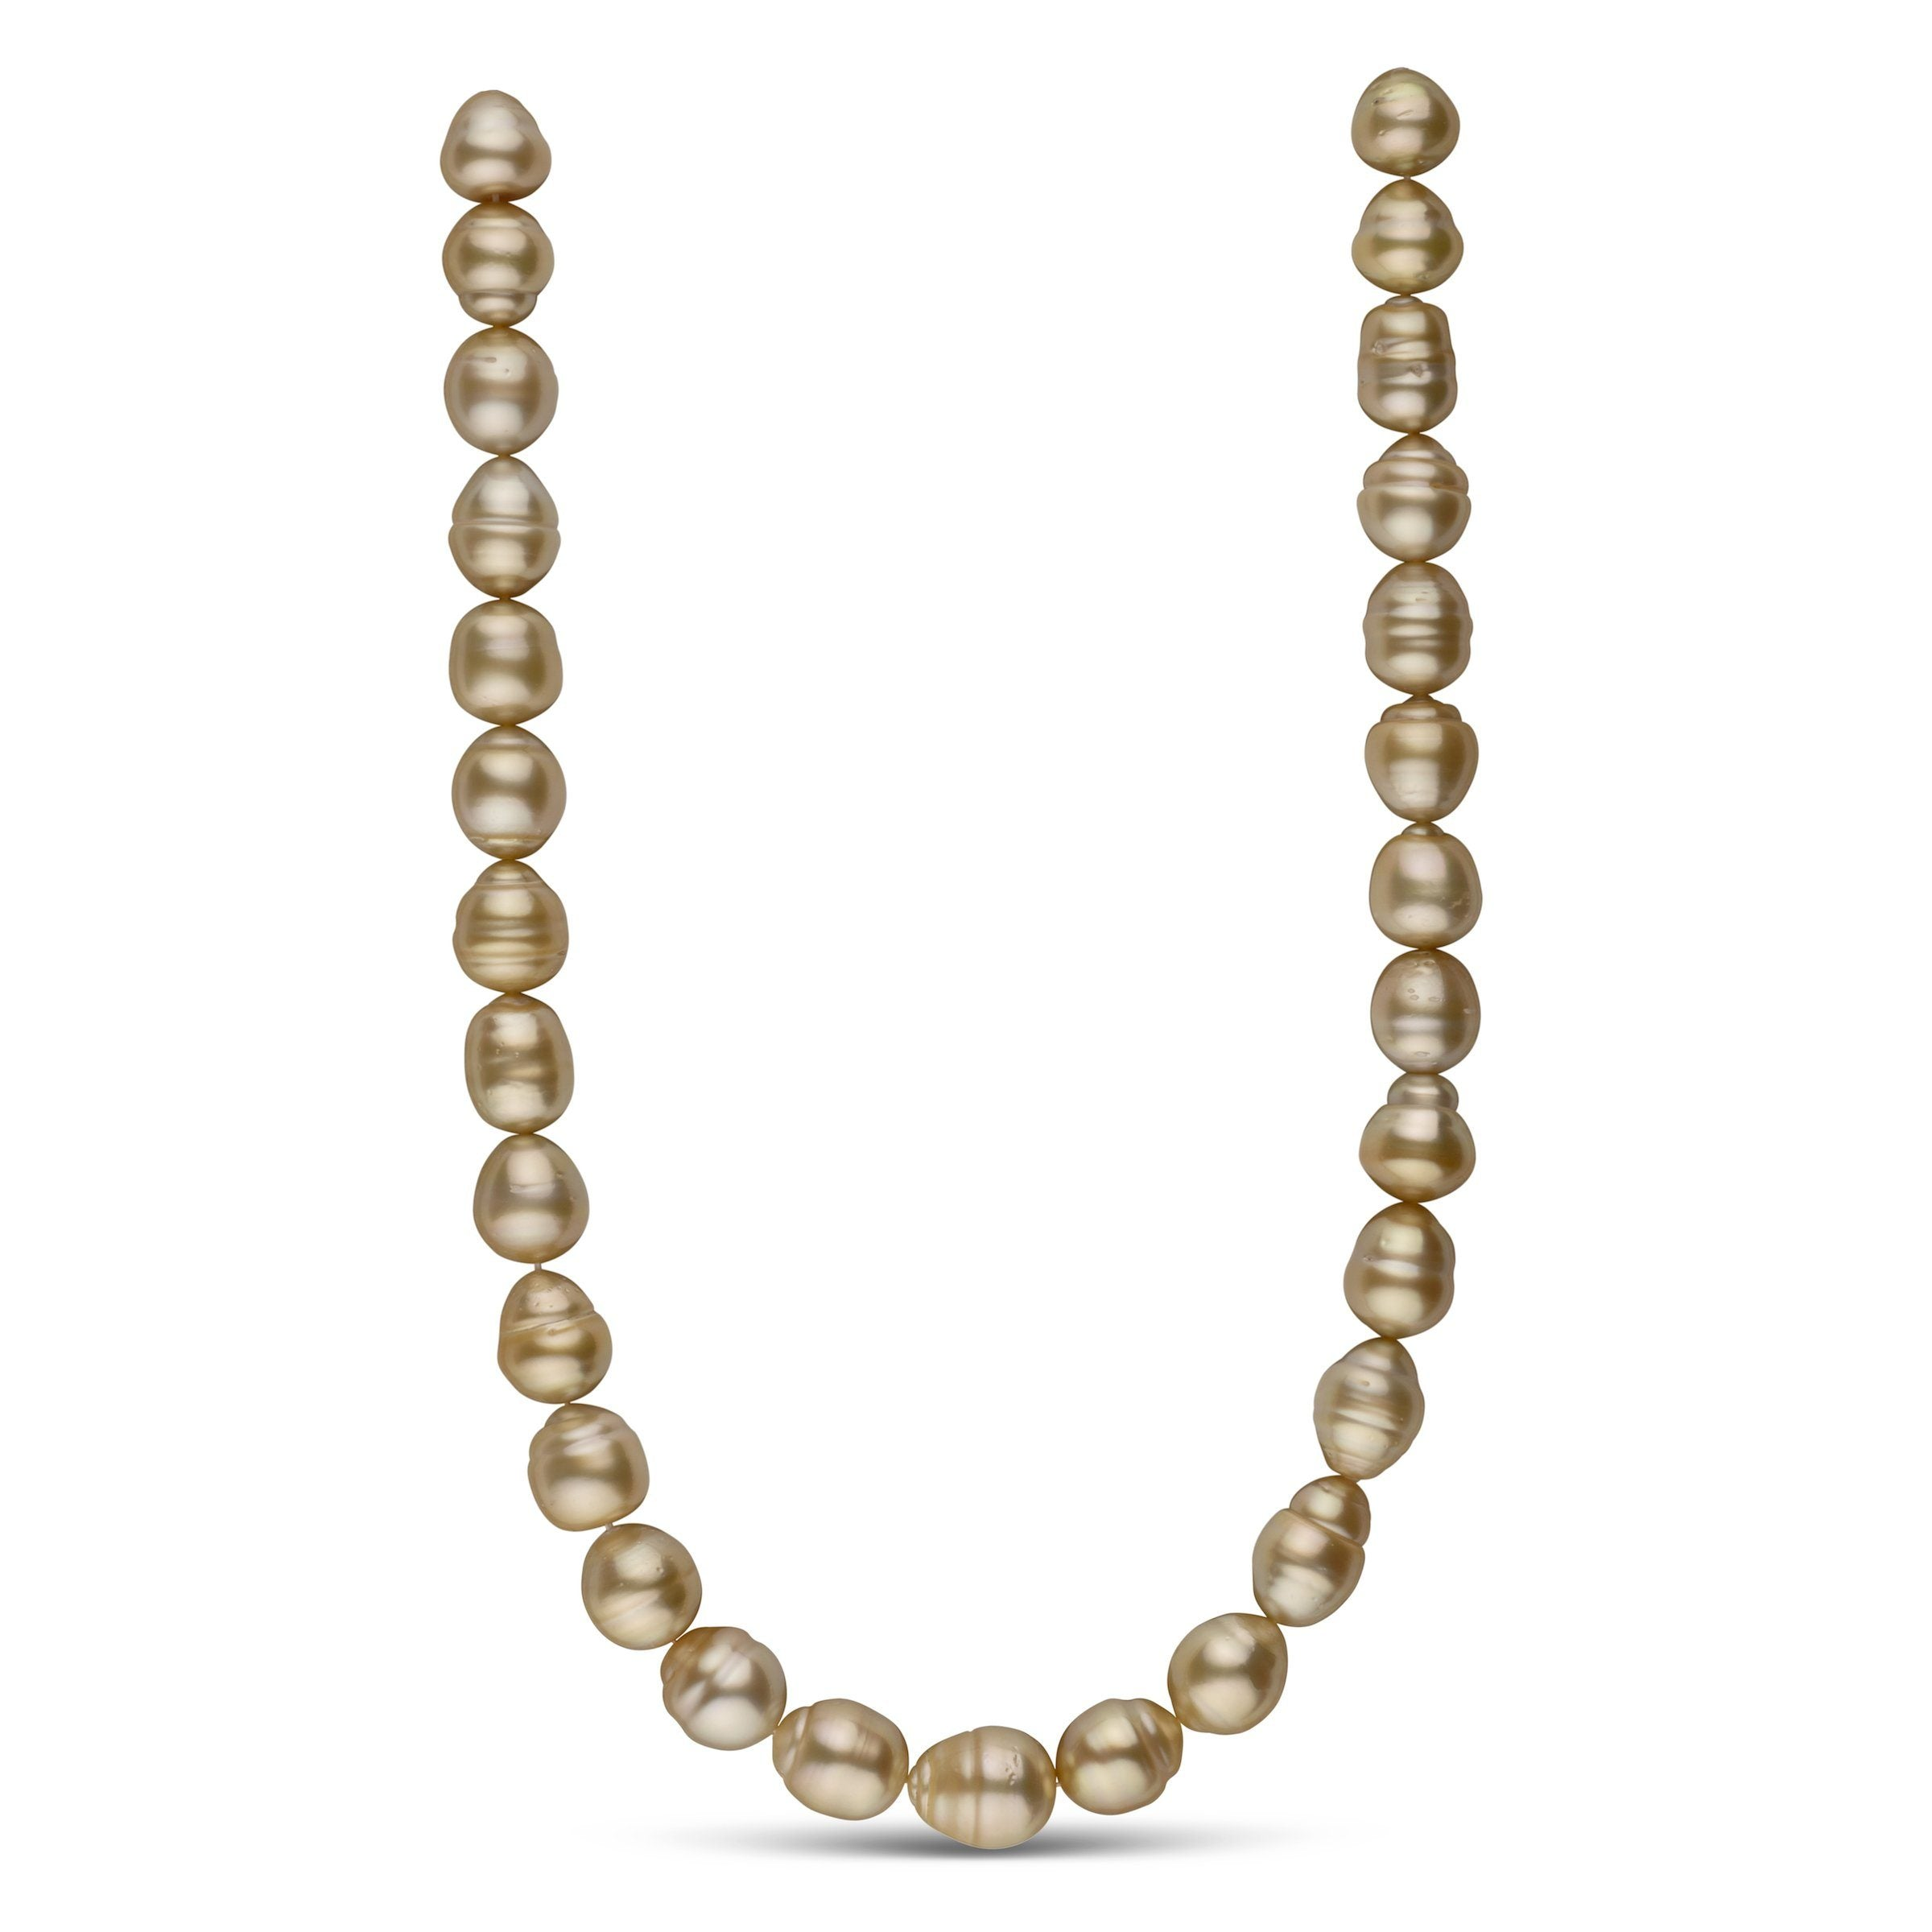 12.0-13.4 mm AA+ Golden South Sea Baroque Necklace